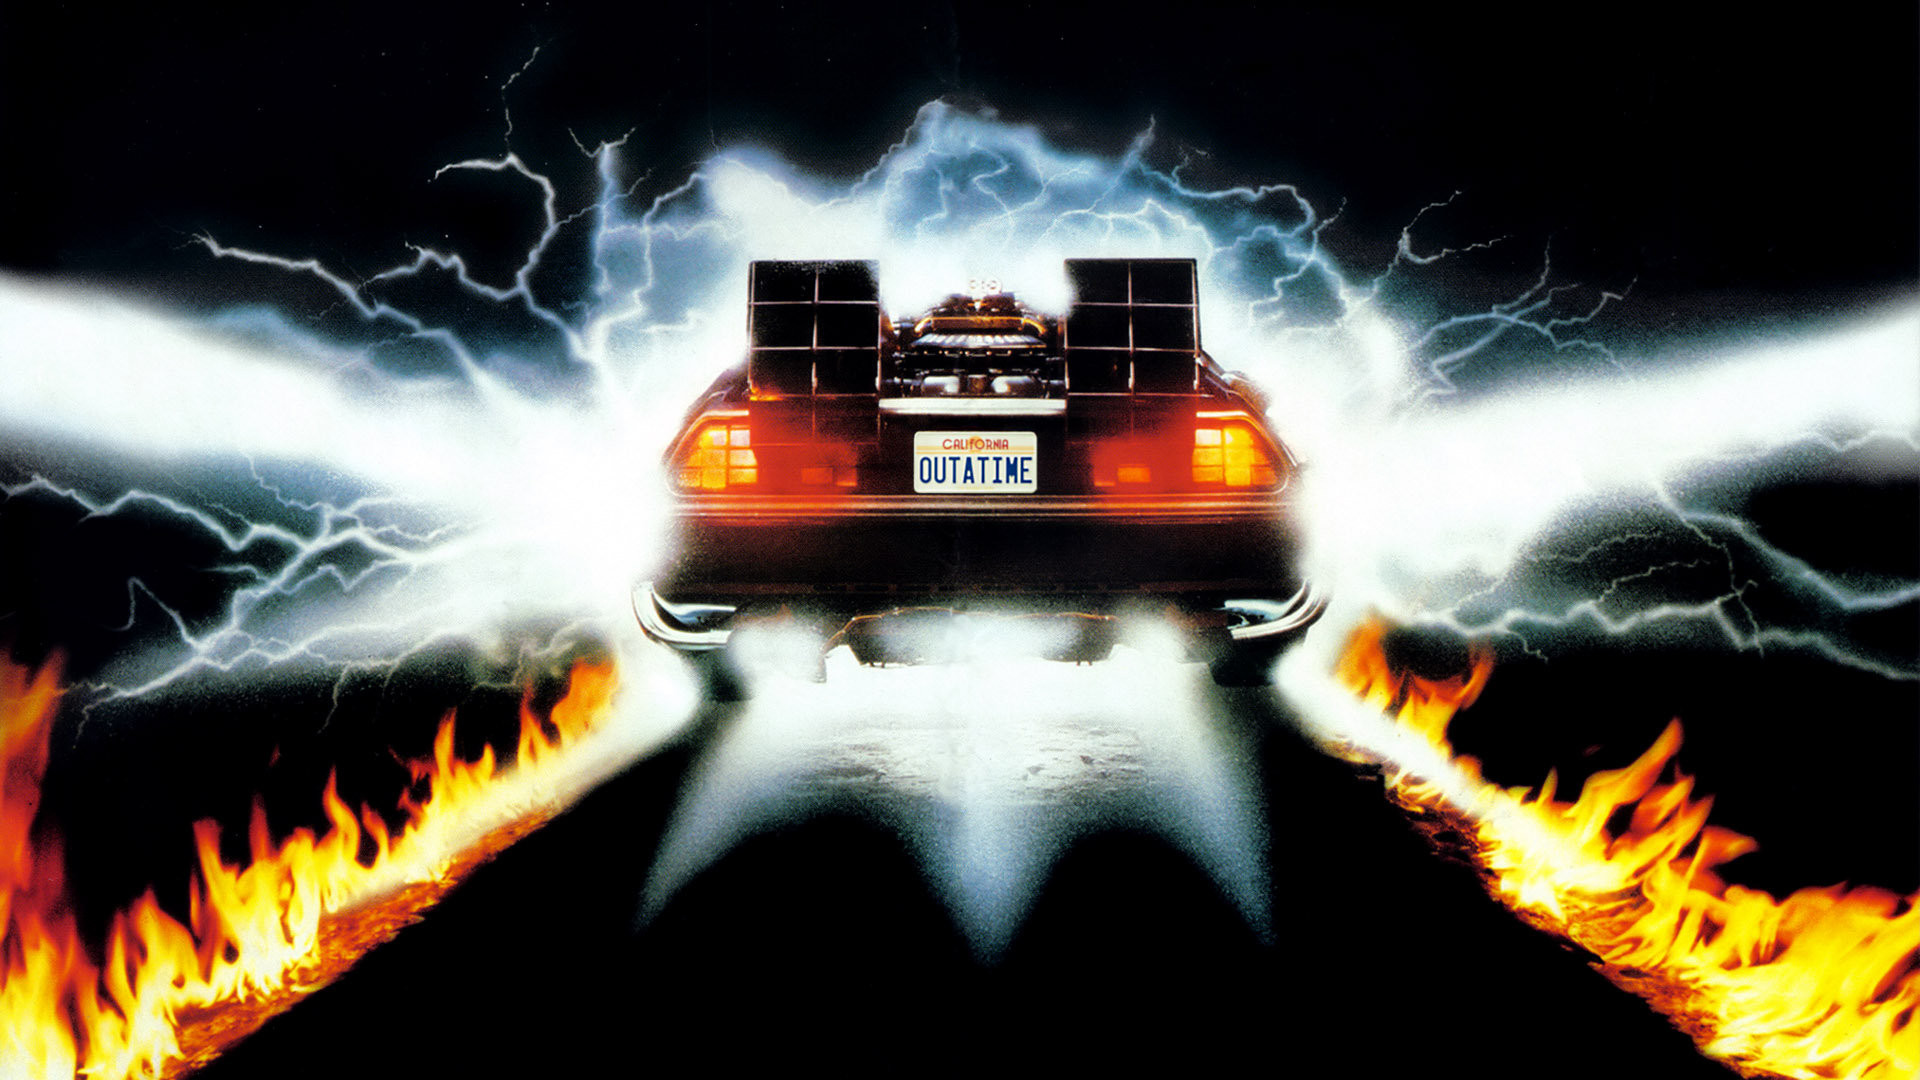 http://www.miss-seo-girl.com/wp-content/uploads/2014/08/back-to-the-future-delorean.jpeg